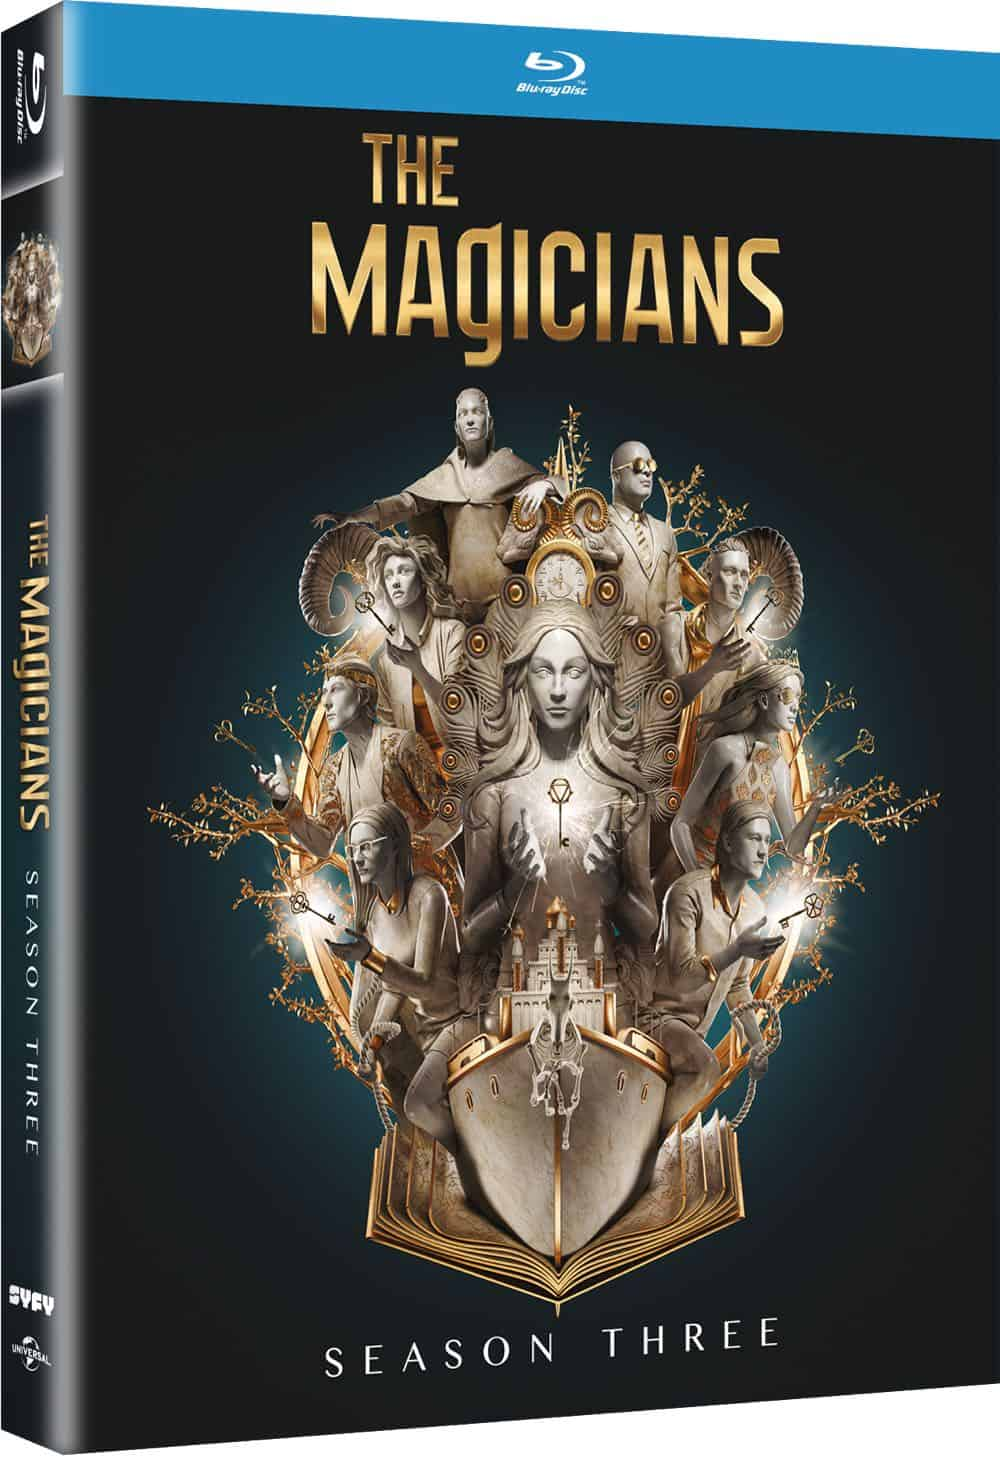 The Magicians Season 3 Bluray Cover 4